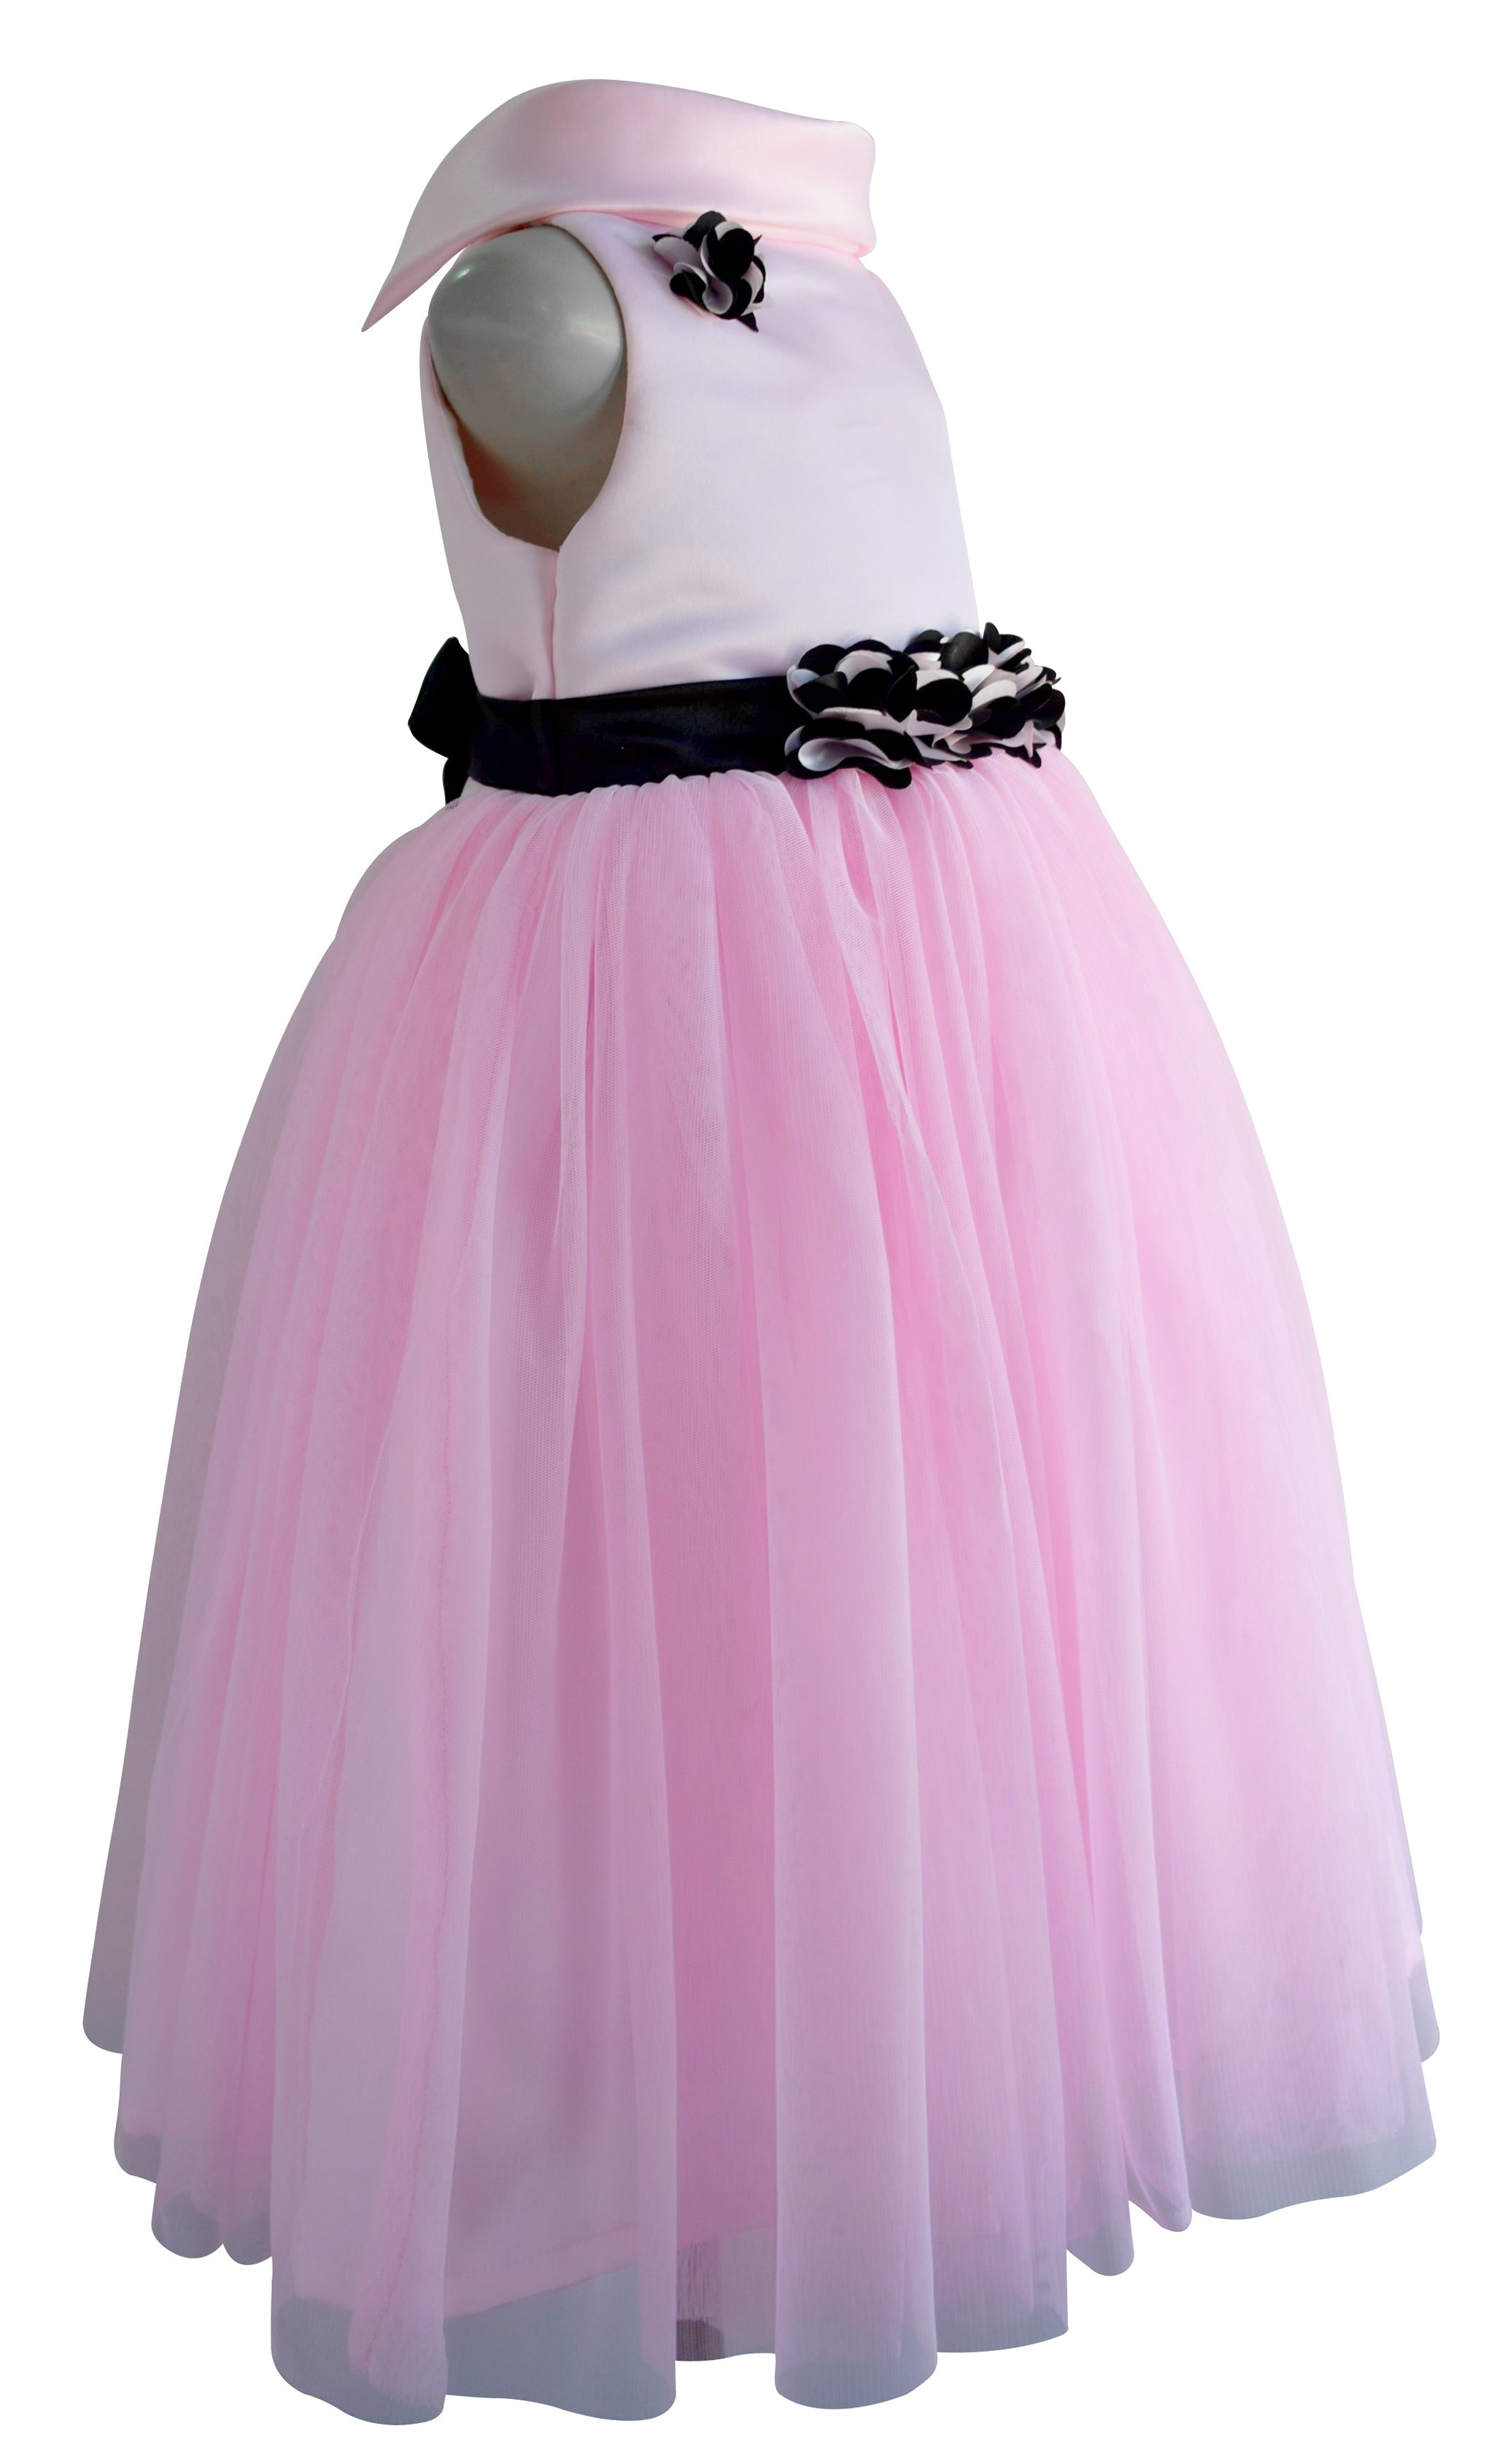 0cd2fcfc911d Buy Girls party wear dresses online|birthday dresses|dresses for girls